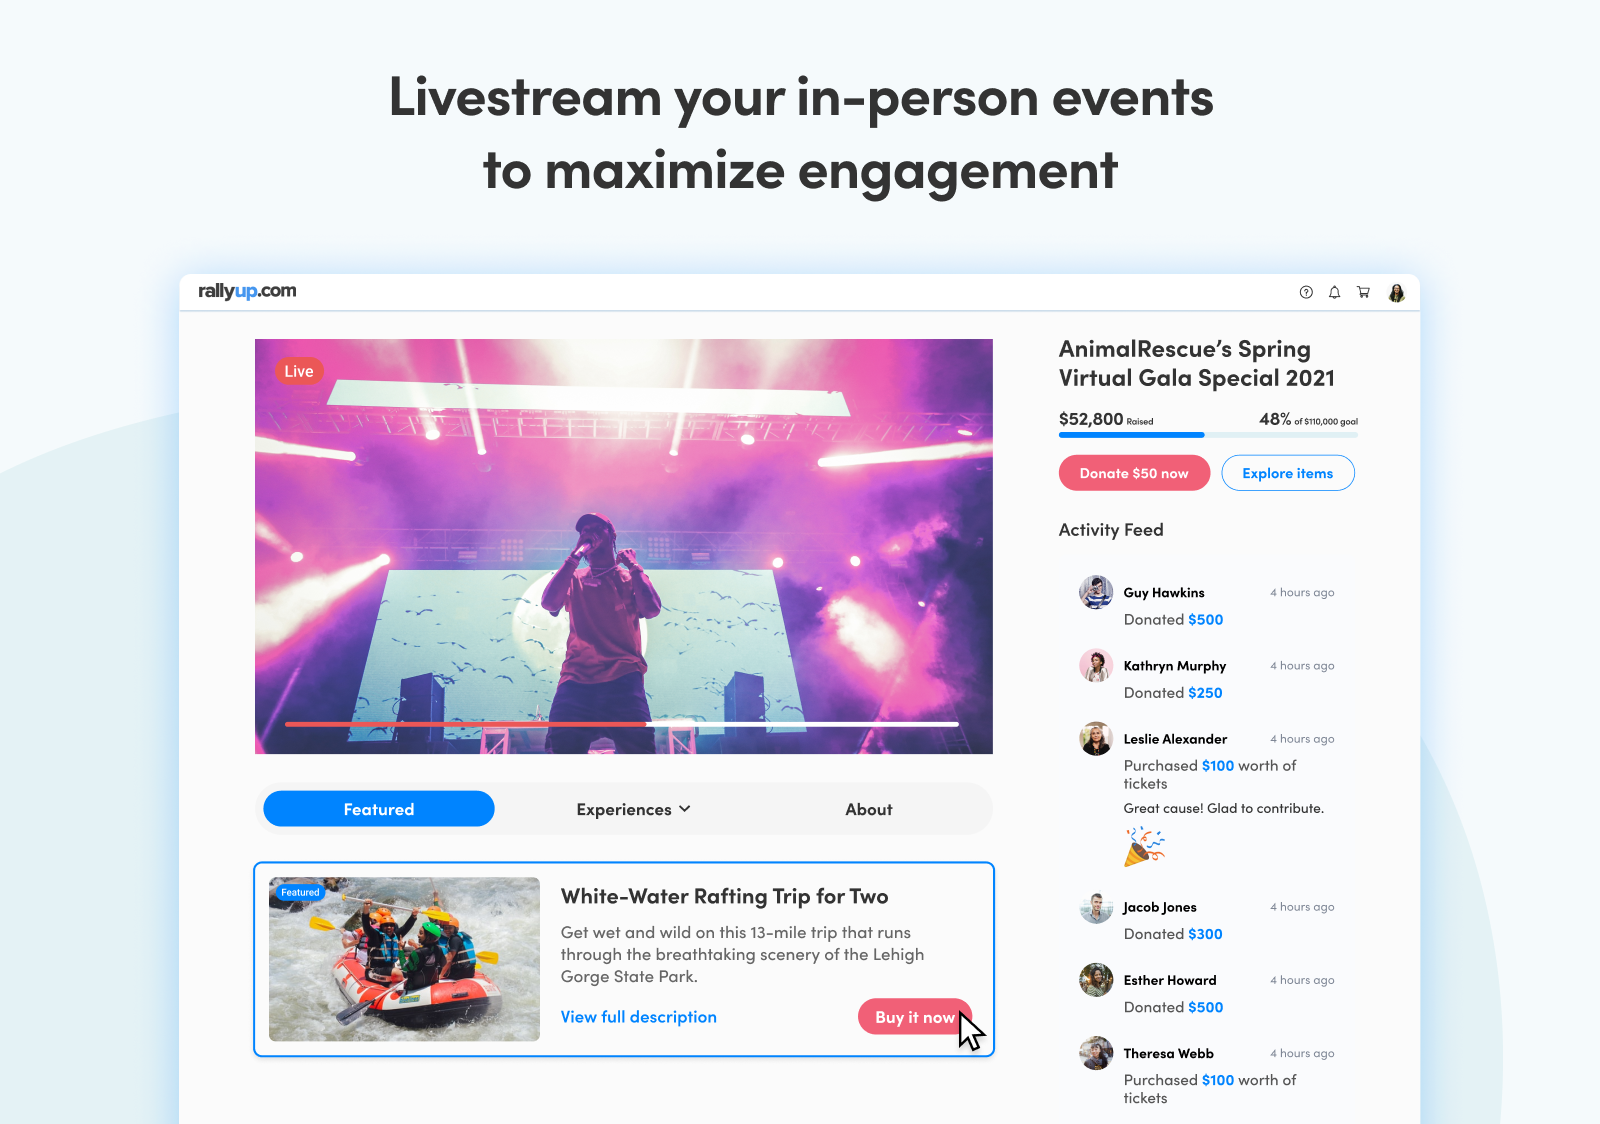 Livestream your in-person events to maximize engagement